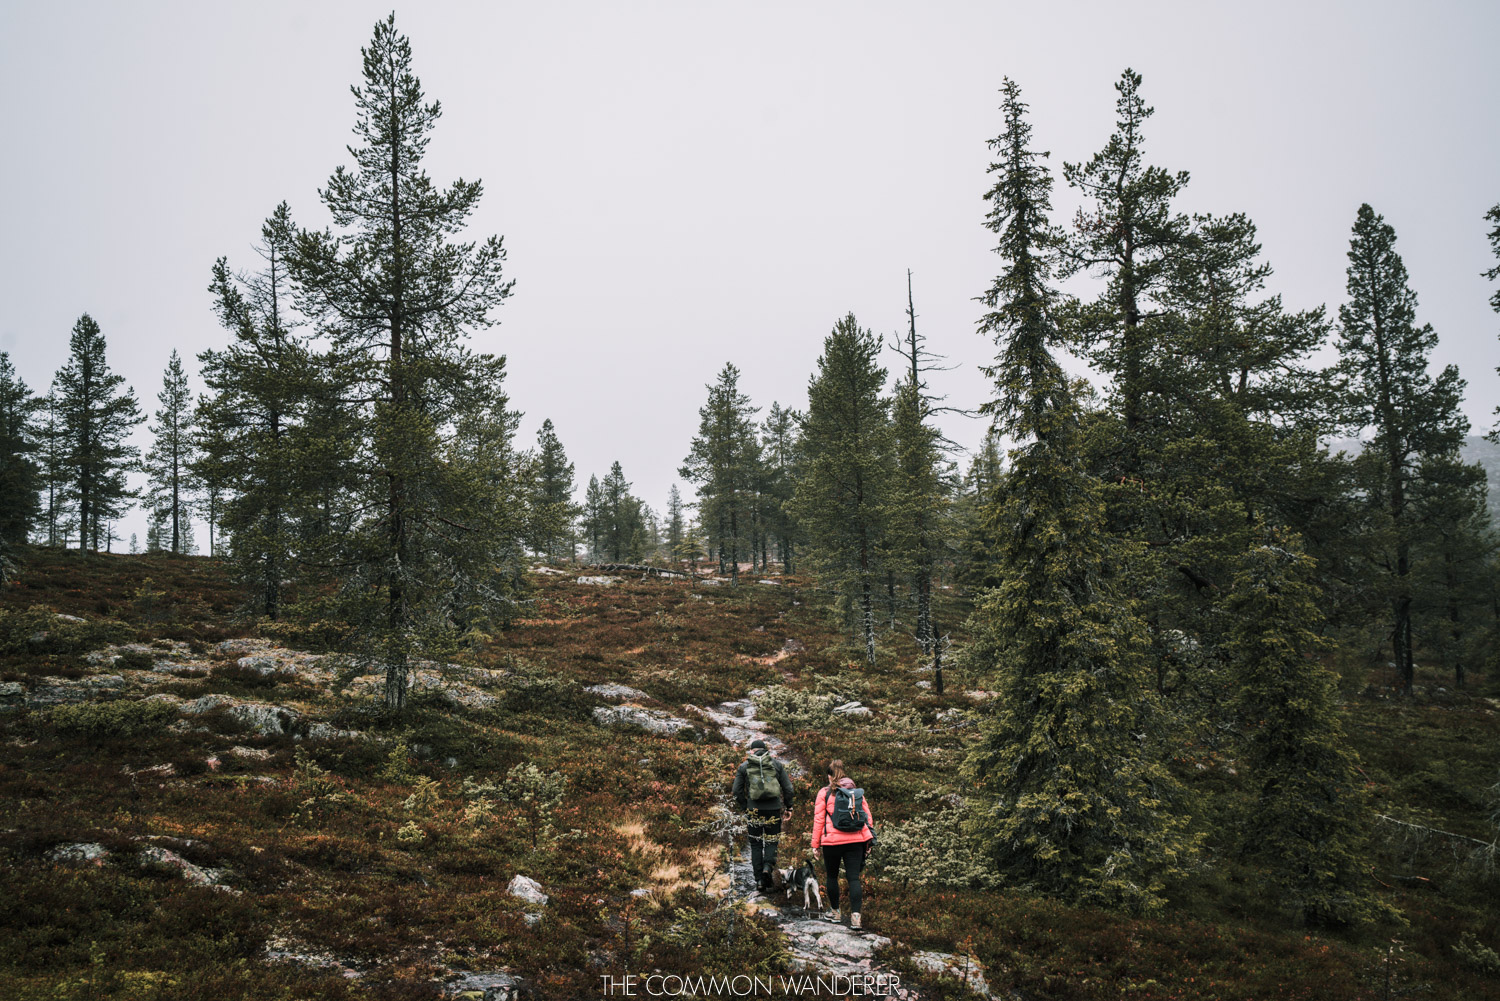 Lapland Pictures: hiking in the forest near Arjeplog, Swedish Lapland, Sweden